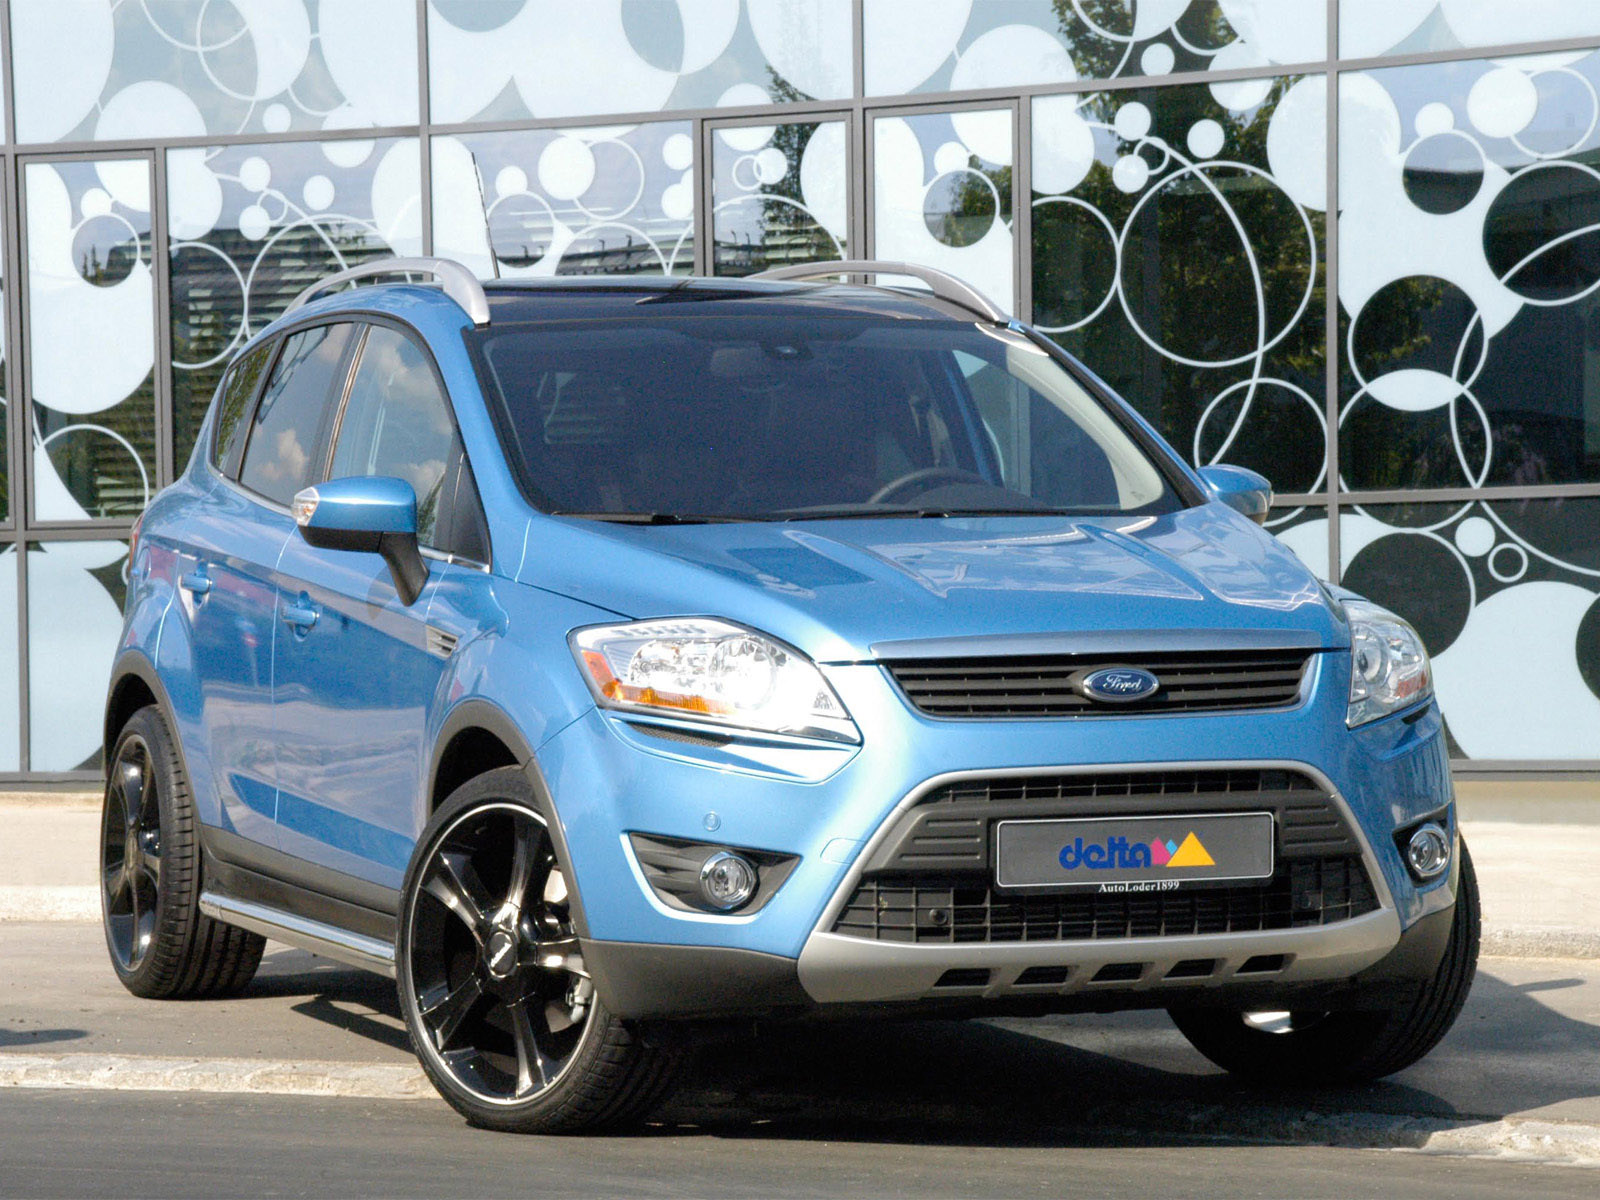 delta ford kuga 2008 delta ford kuga 2008 photo 02 car in pictures car photo gallery. Black Bedroom Furniture Sets. Home Design Ideas